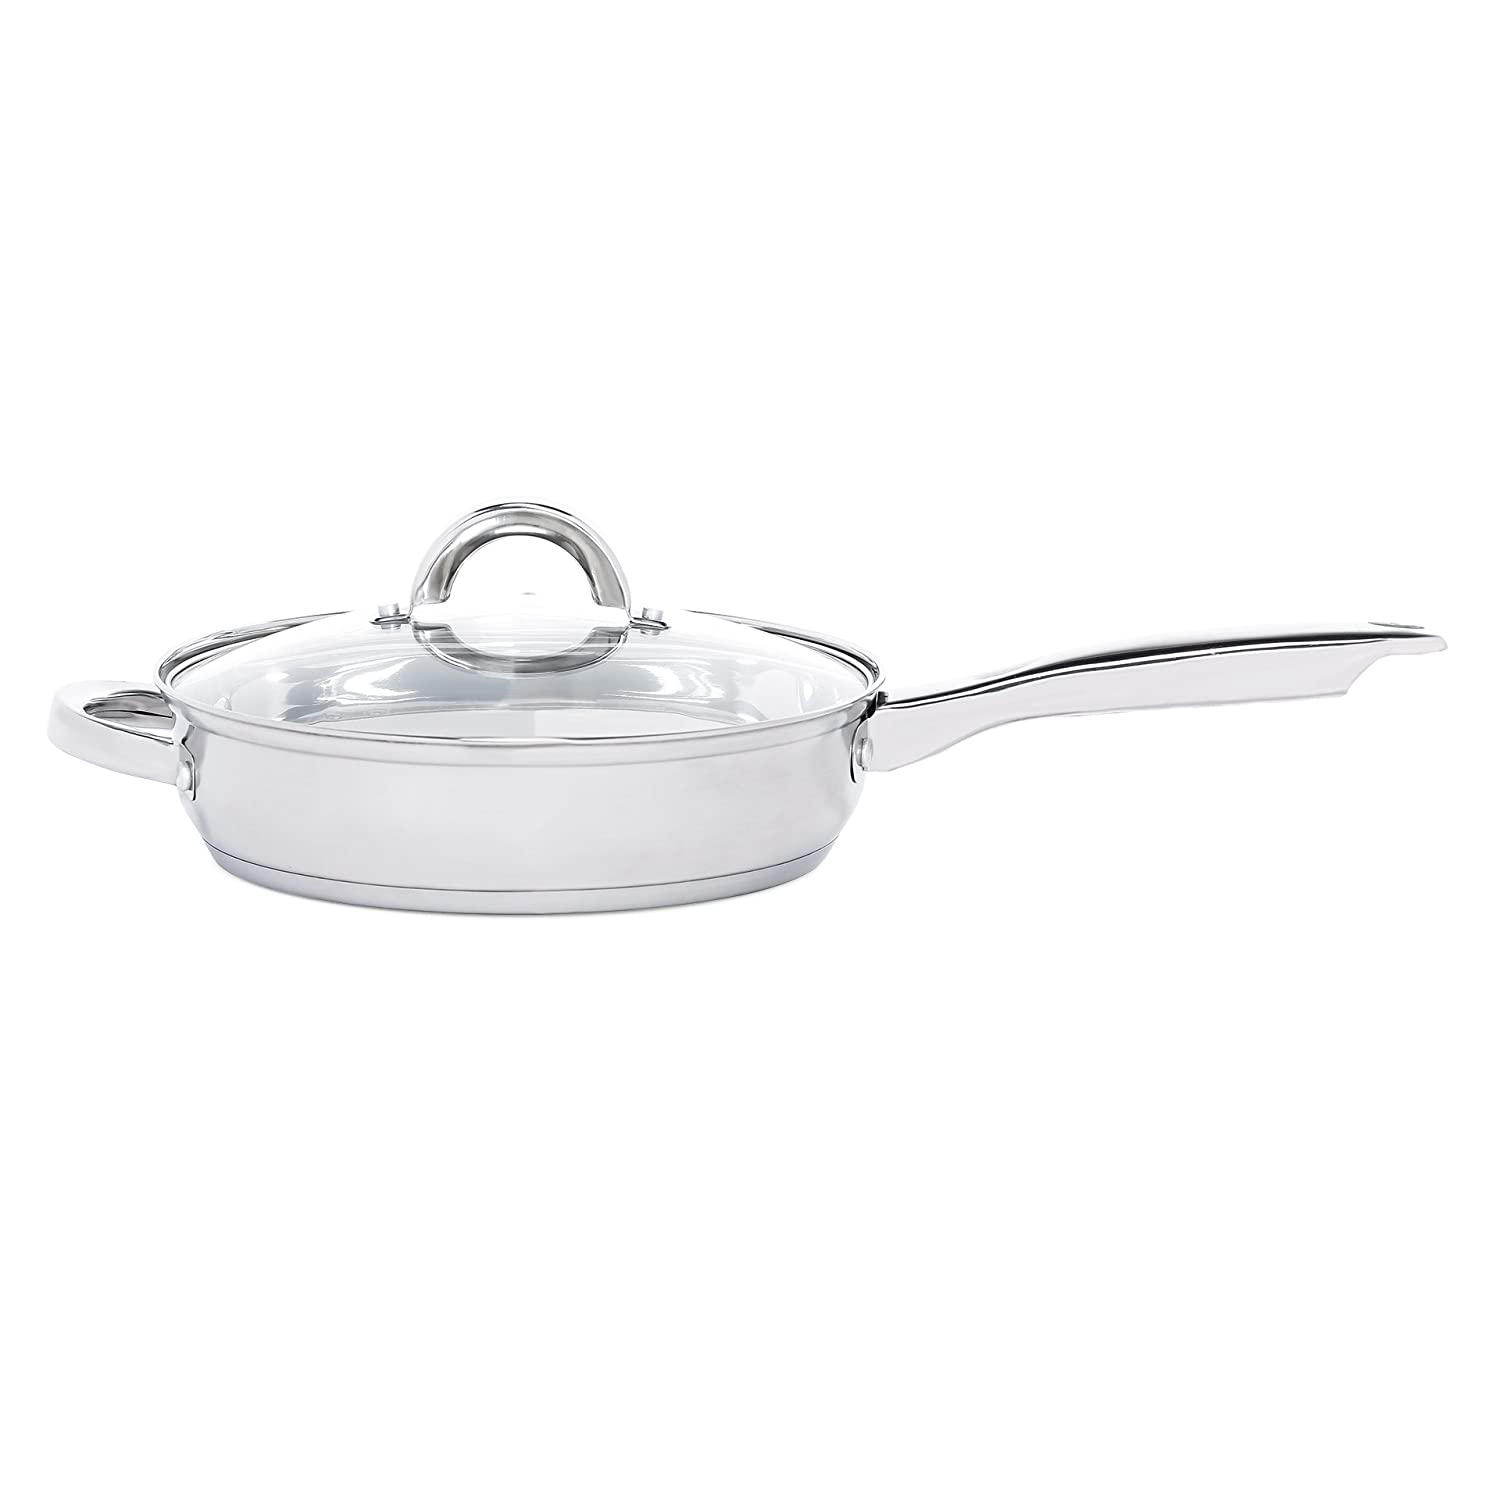 Heim Concept W-001 12-Piece Induction Ready Stainless Steel Cookware Sets with Glass Lid Silver on Cookware Sets Stainless Steel Cookware Sets on Sale